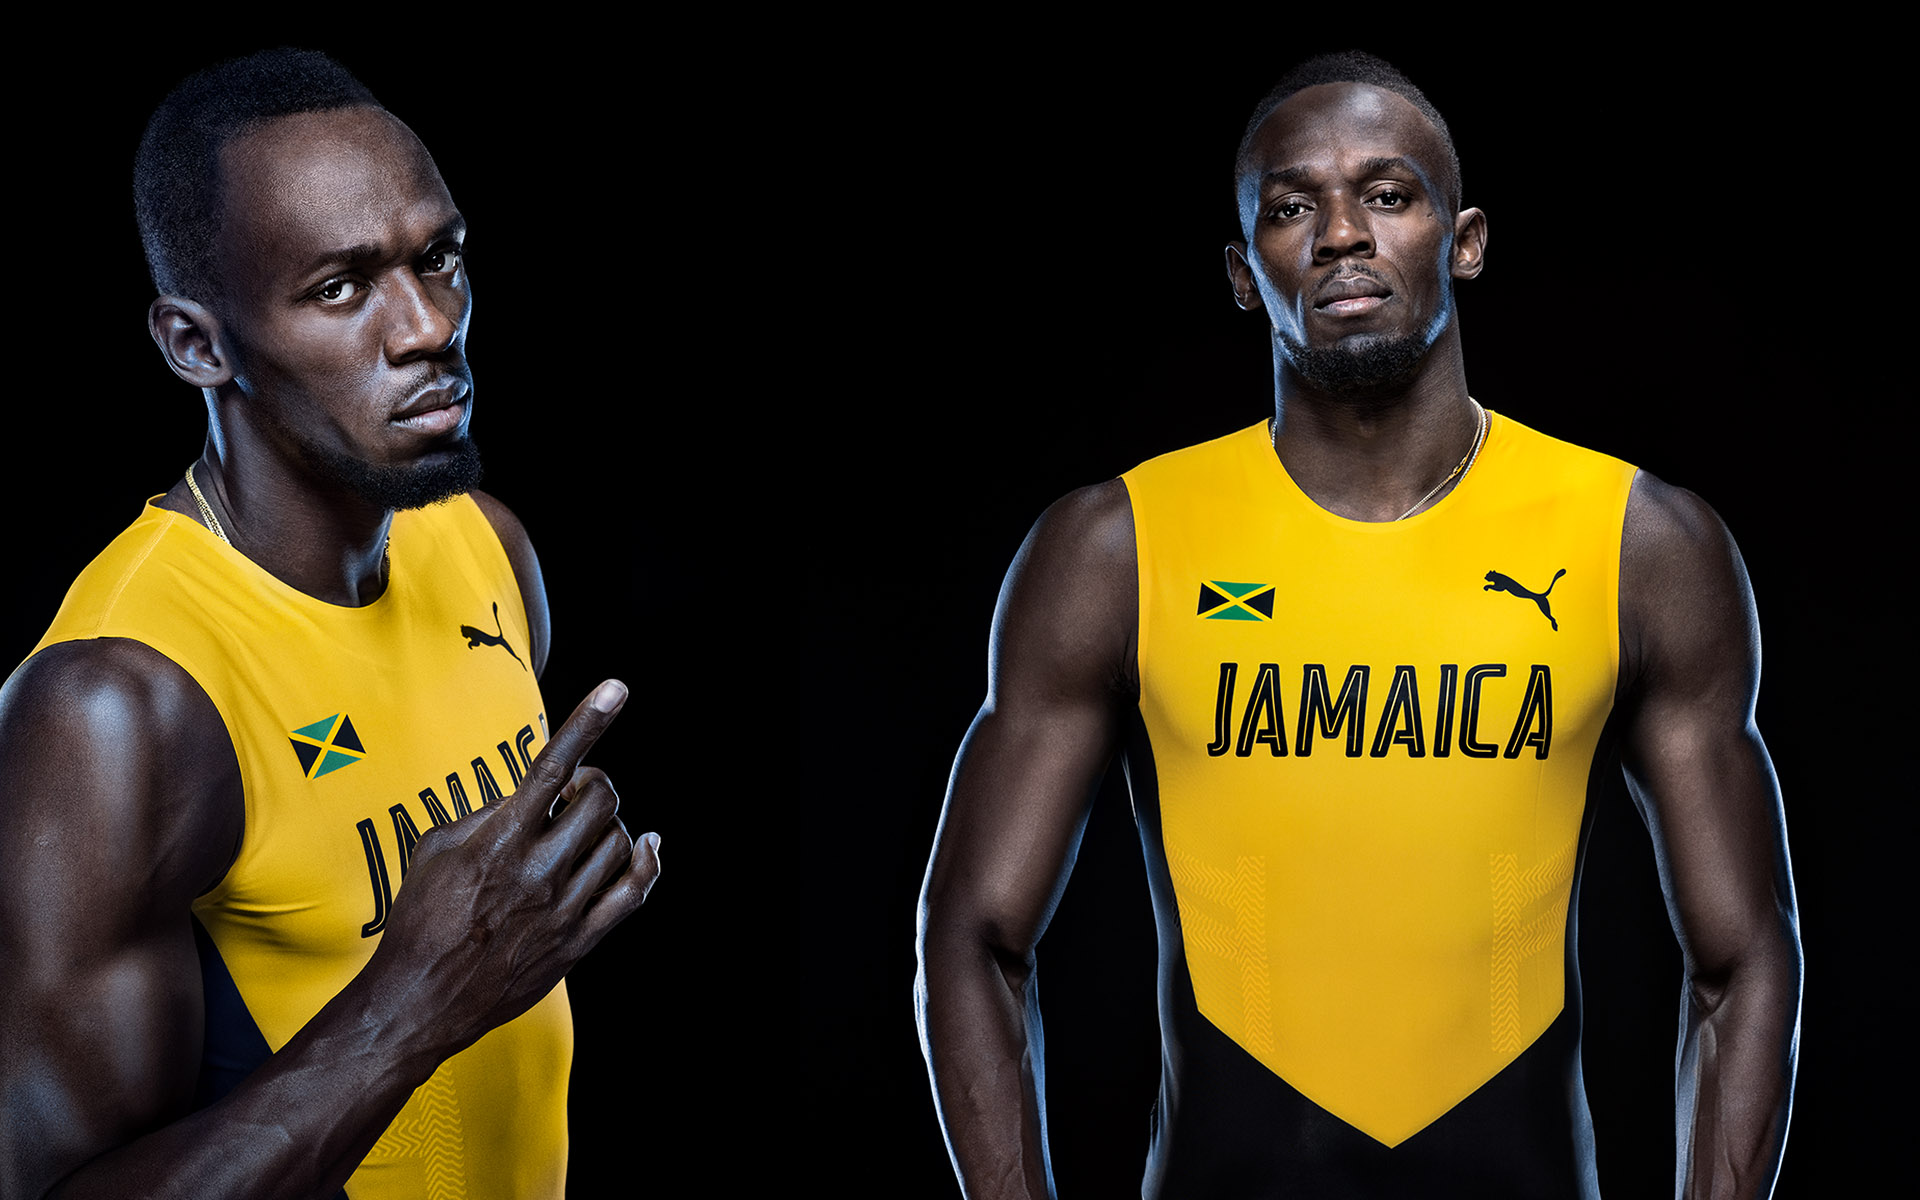 Usain Bolt ©Paul Cooper